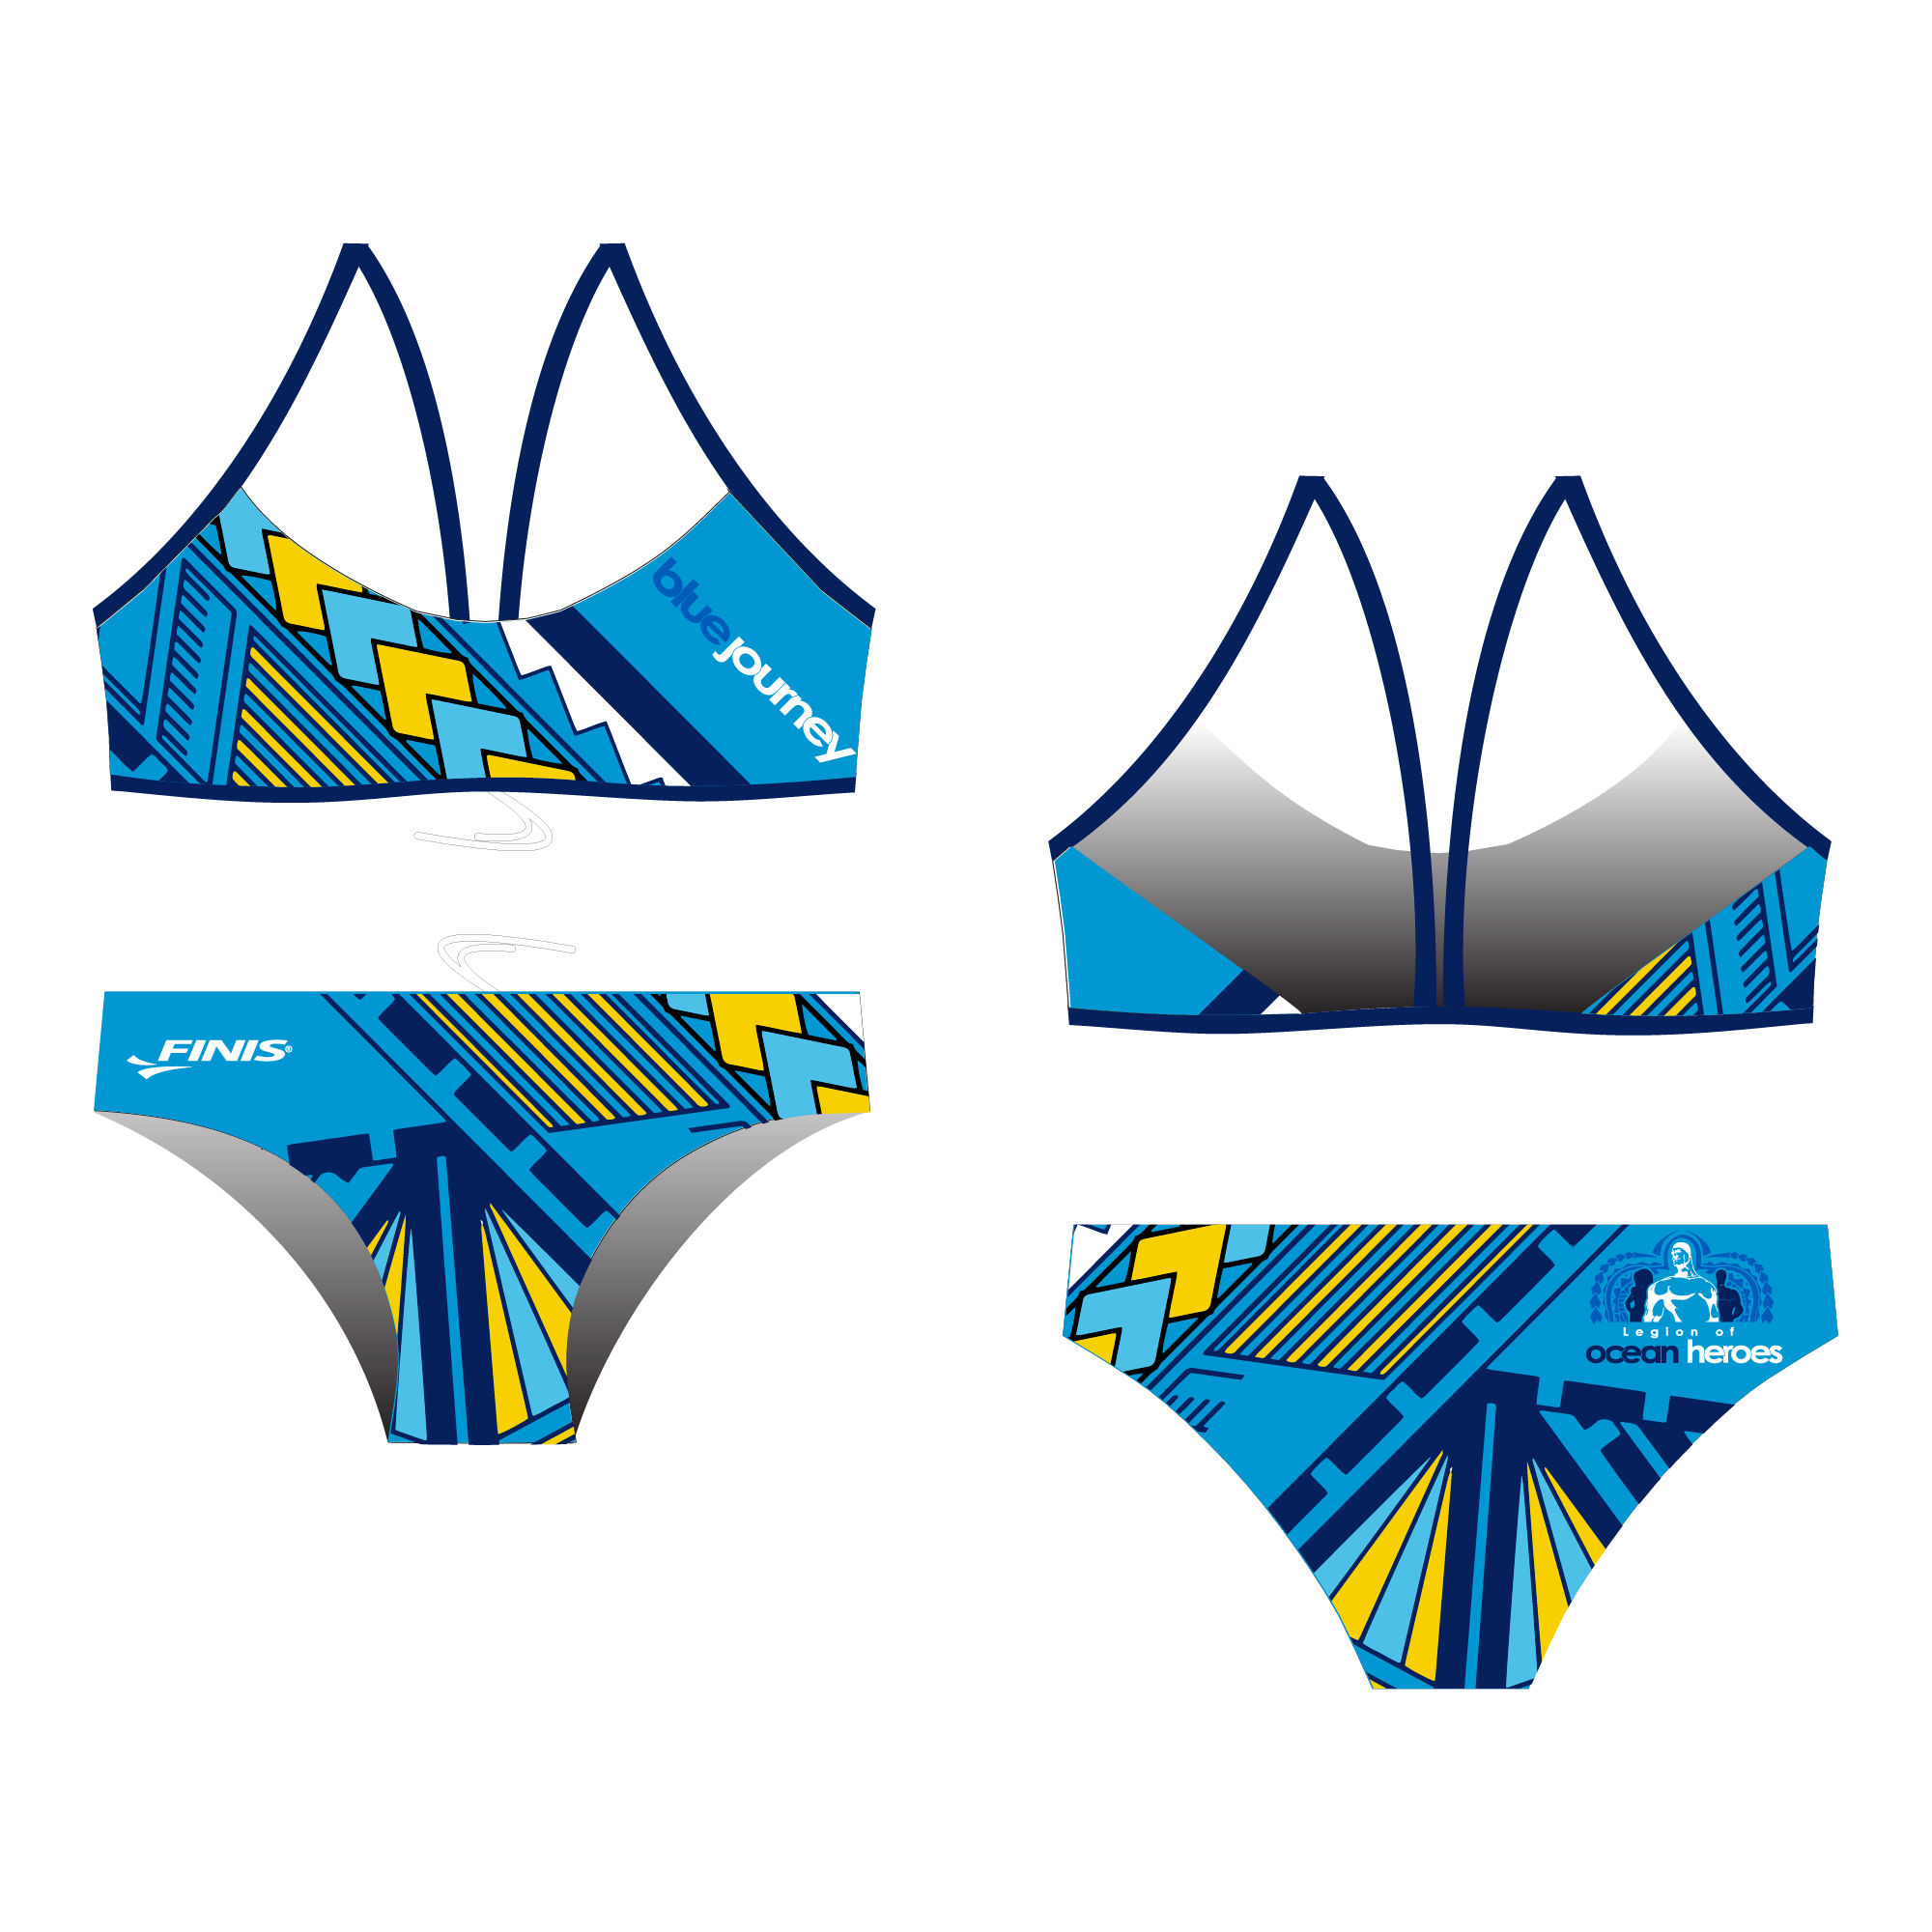 Legion of oxean heros blue journey design on a finis custom bikini open back swimsuit back.